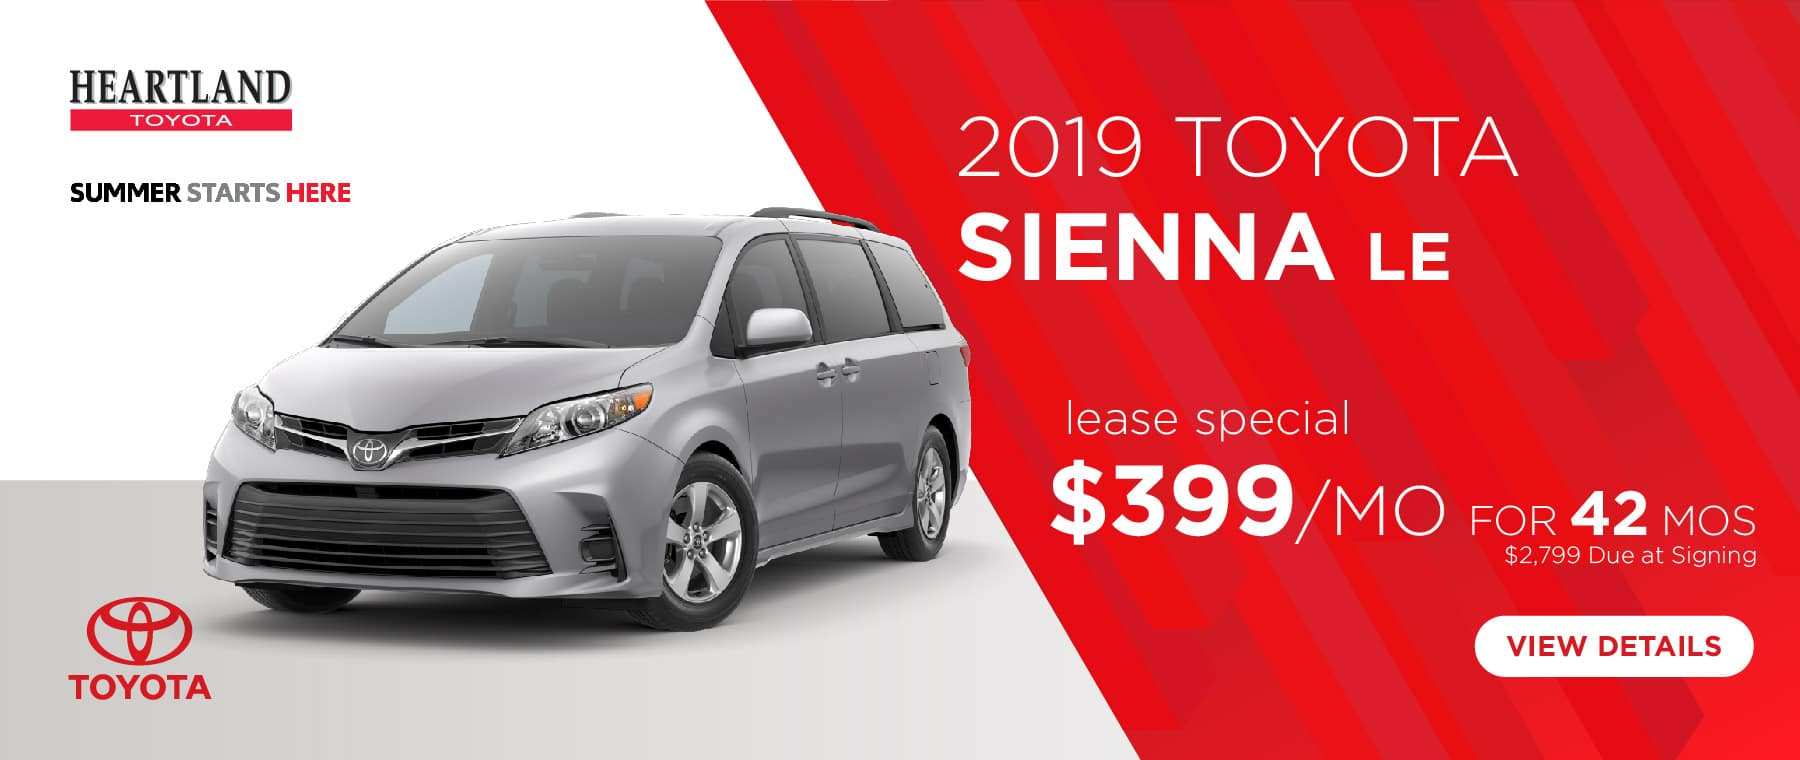 2019 Toyota Sienna LE  $399/mo. For 42 months* *Offer valid on 2019 Toyota Sienna LE (5338). $399 per mo. for 42 months. Lease with $2,799 due at signing; includes a $695 acquisition fee. Valid on VIN: 5TDKZ3DC8KS020436, 5TDKZ3DC7KS005247. MSRP starting at $35,030. Deal #347932. Subject to credit approval. No Security deposit required. Excludes taxes, title, and fees. 42 monthly payments required. Not all lessees will qualify for lowest payment through participating lender. Residency restrictions apply. Lessee responsible for mileage over 10,000 miles per year at $0.25/mile per year. Option to purchase at lease end. A negotiable dealer documentary service fee of up to $150 may be added to the sale price or capitalized cost. Offer expires 5/30/2019.